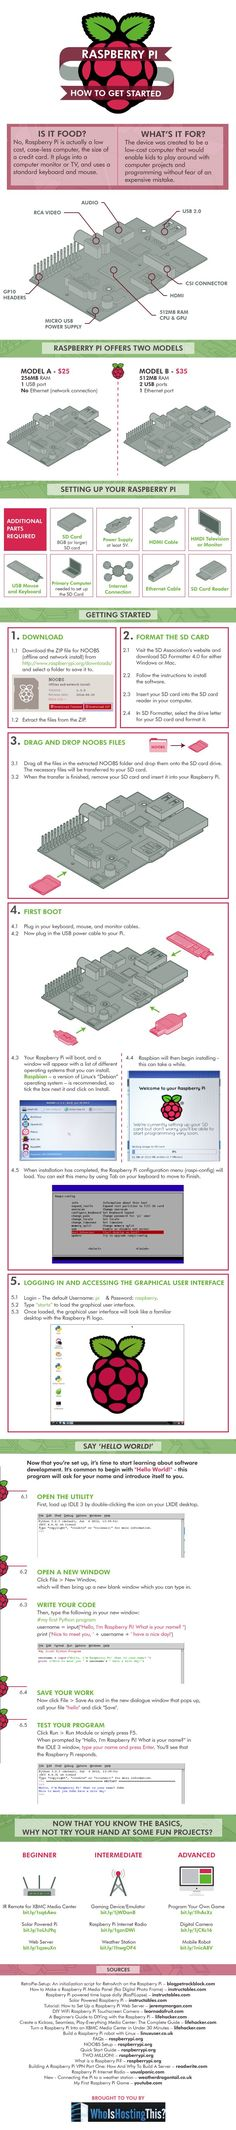 Raspberry Pi: How To Get Started (Models A & B) - Imgur